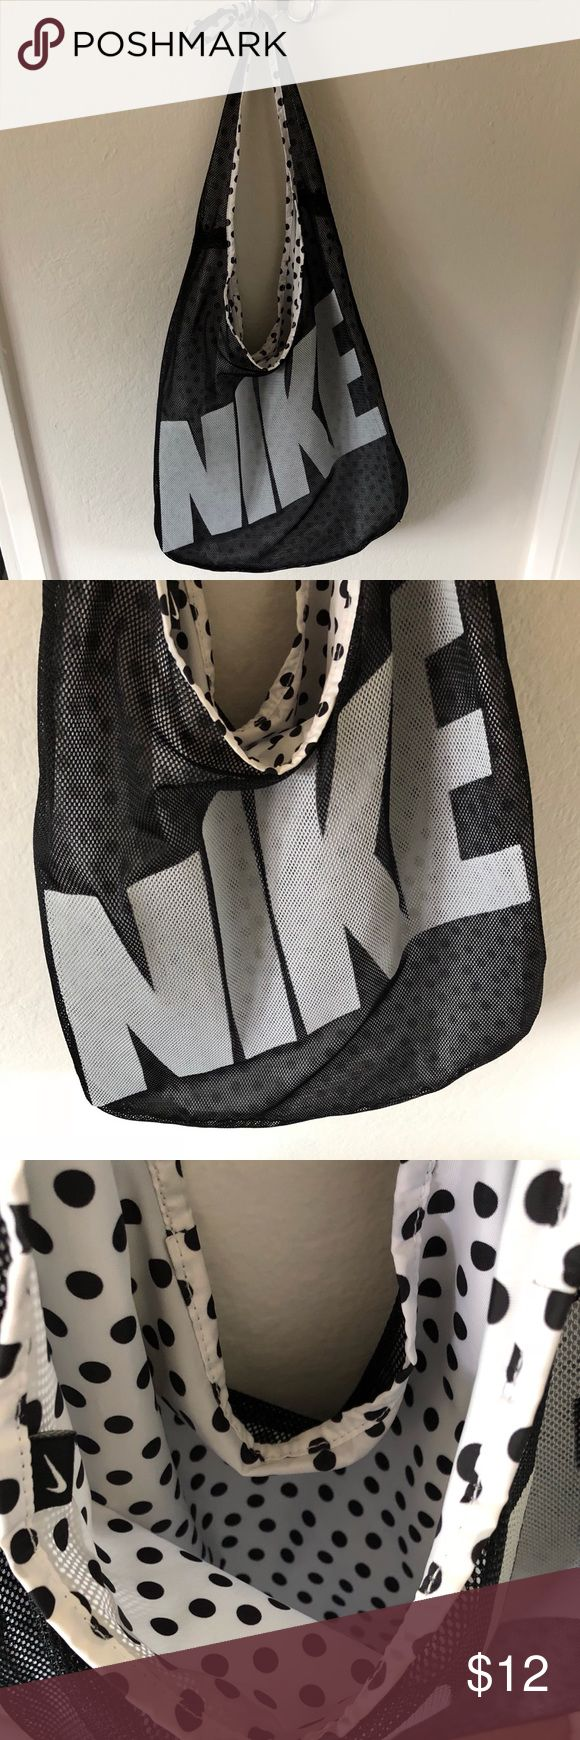 Nike Gym Tote Bag Nike gym shoulder bag tote with netting and black and white polka dot interior. Excellent condition! Nike Bags Totes